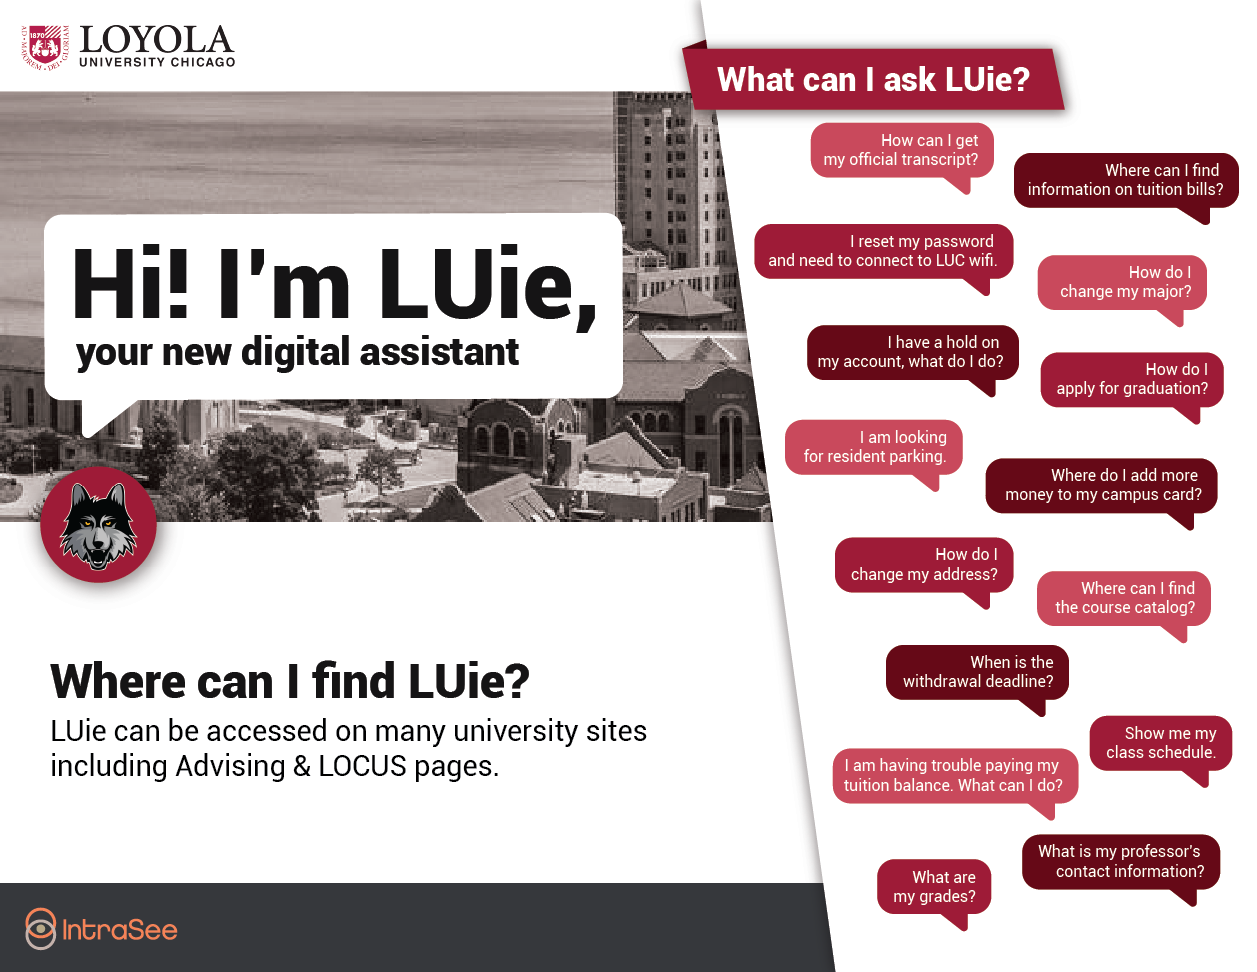 LUie promotional sign with sample questions